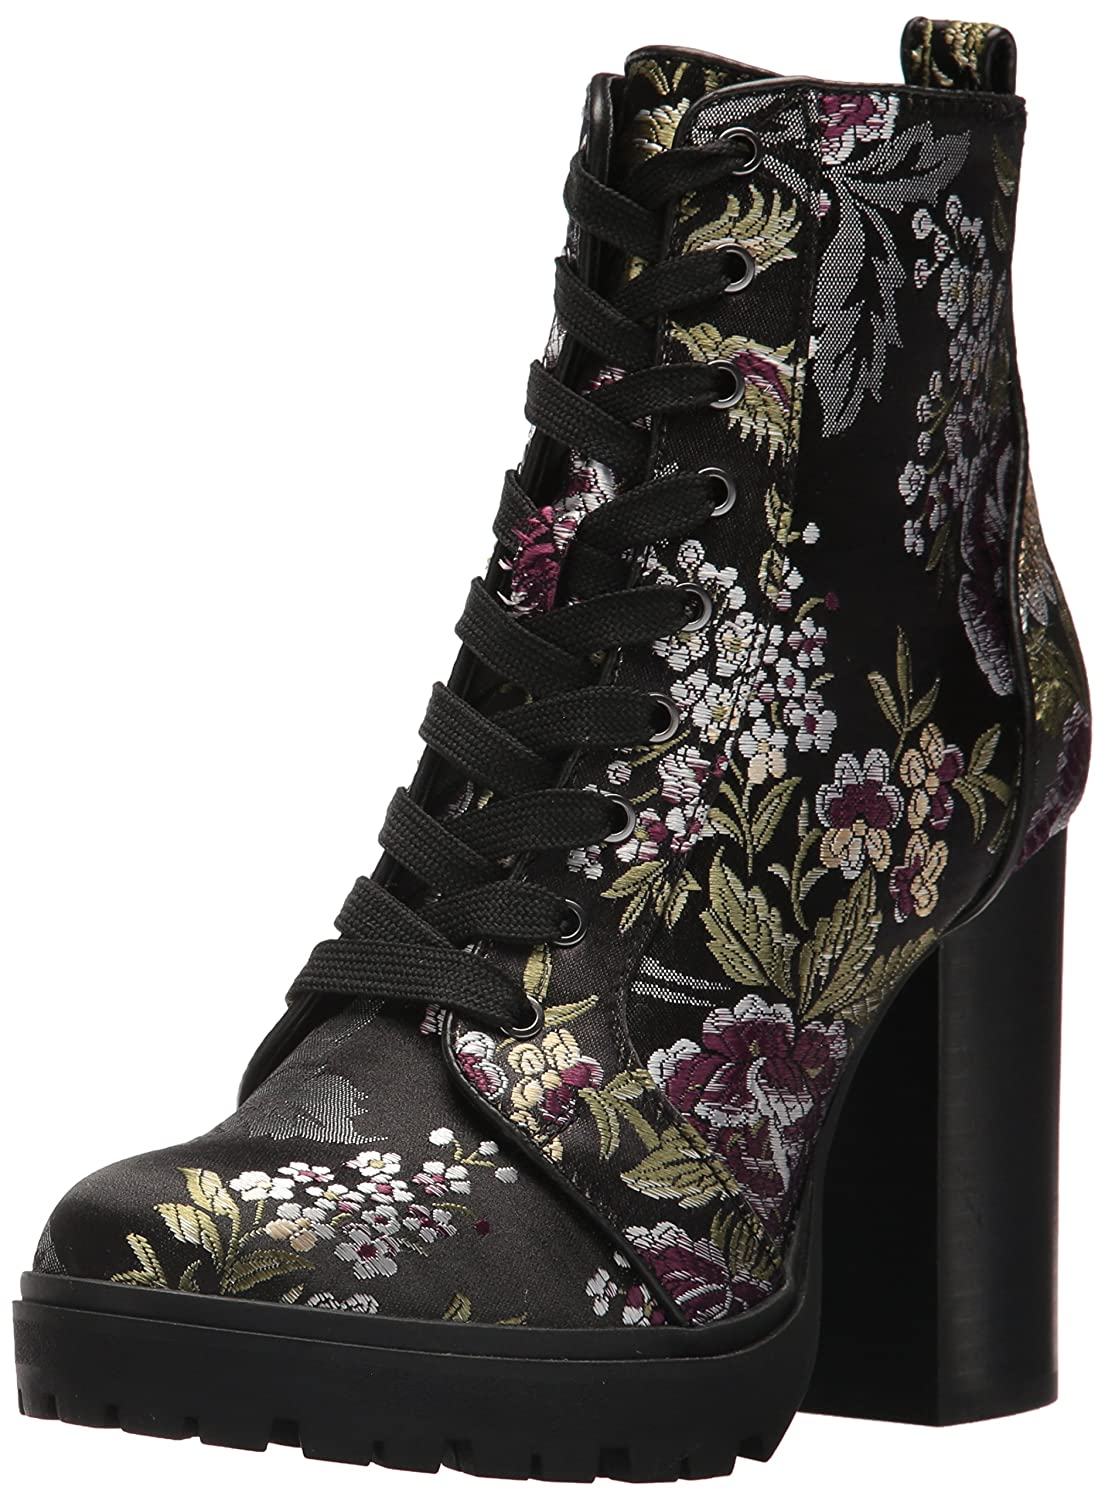 Steve Madden Women's Laurie Combat Boot B075Y9FH55 8.5 M US|Floral Multi